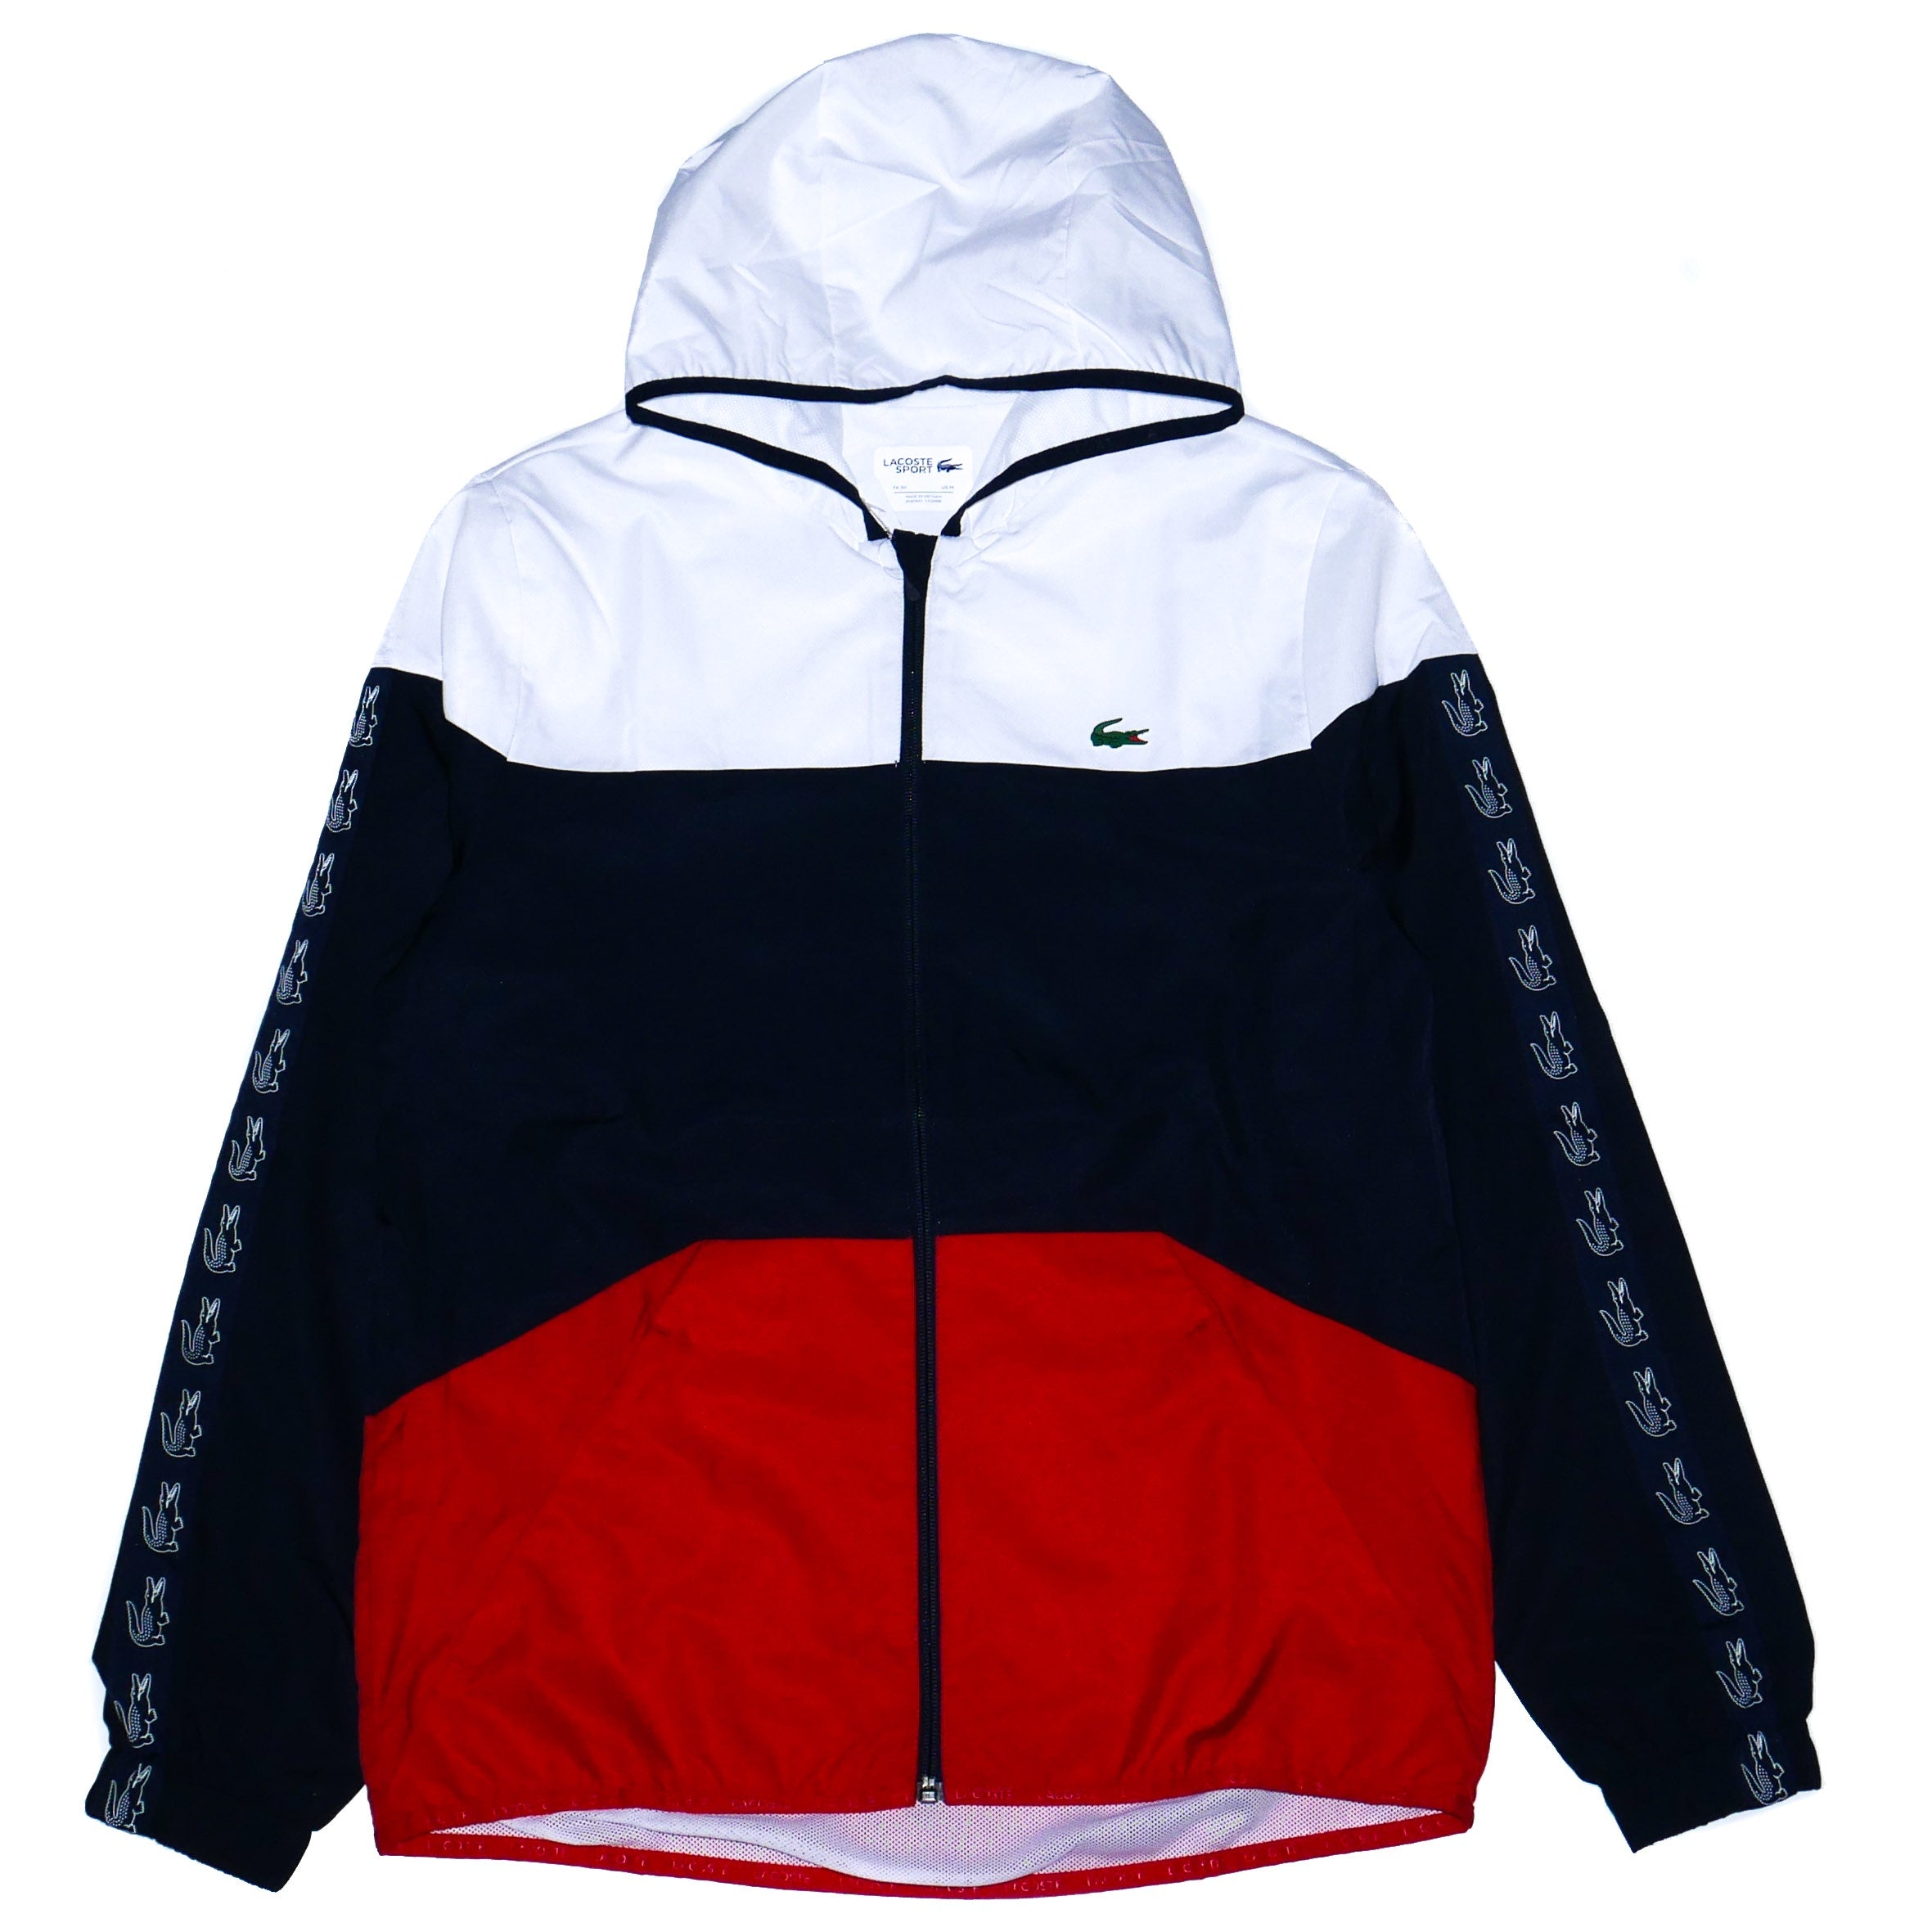 2f004d7bab Lacoste Sport Men's Hooded Tennis Jacket Red/White/Blue